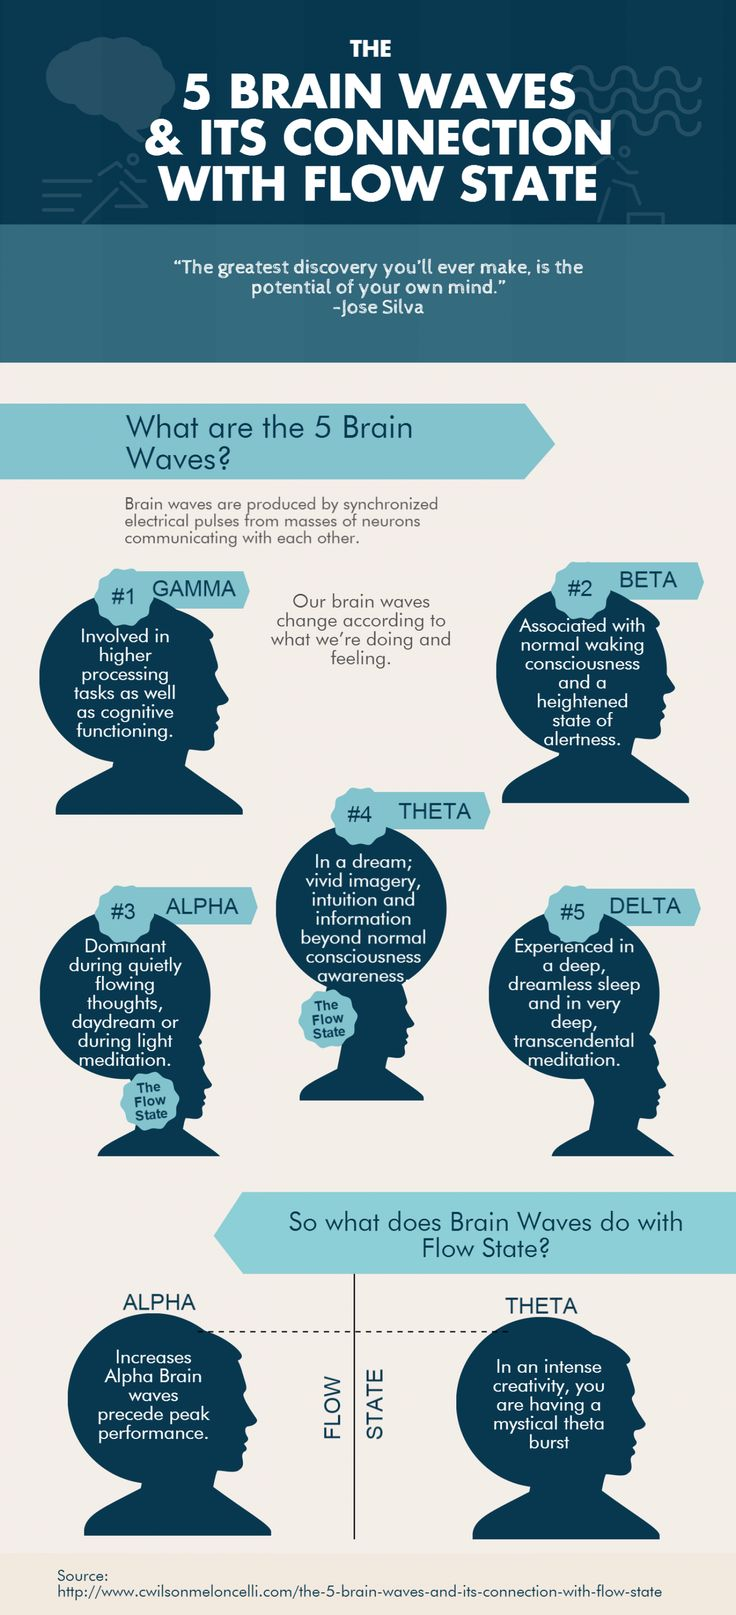 The 5 Brain waves and its Connection with Flow State Infographic